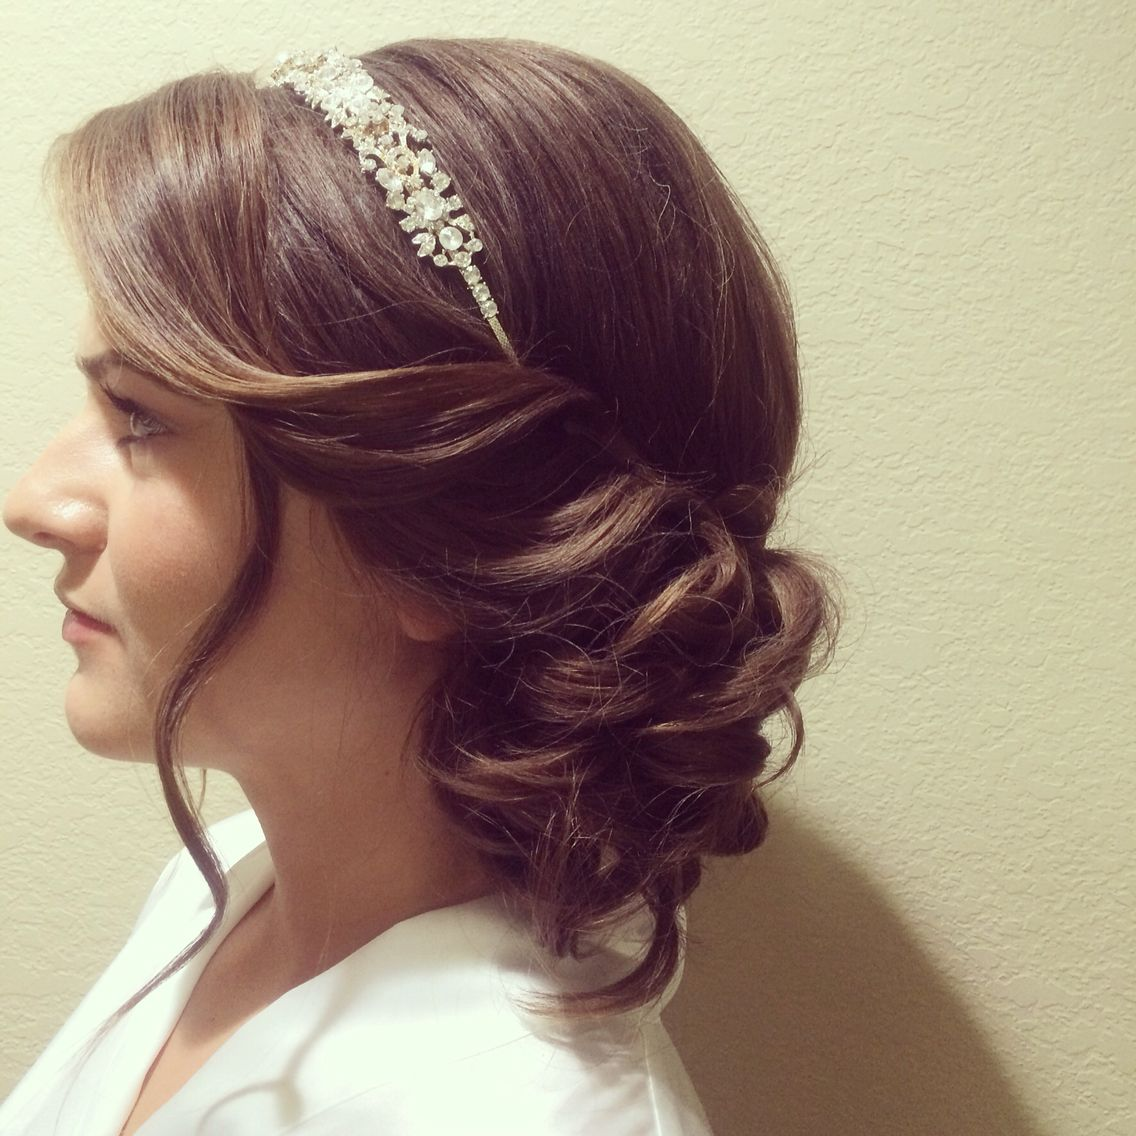 Side bun bridal hairstyle with headband www.danaraiabridal ...